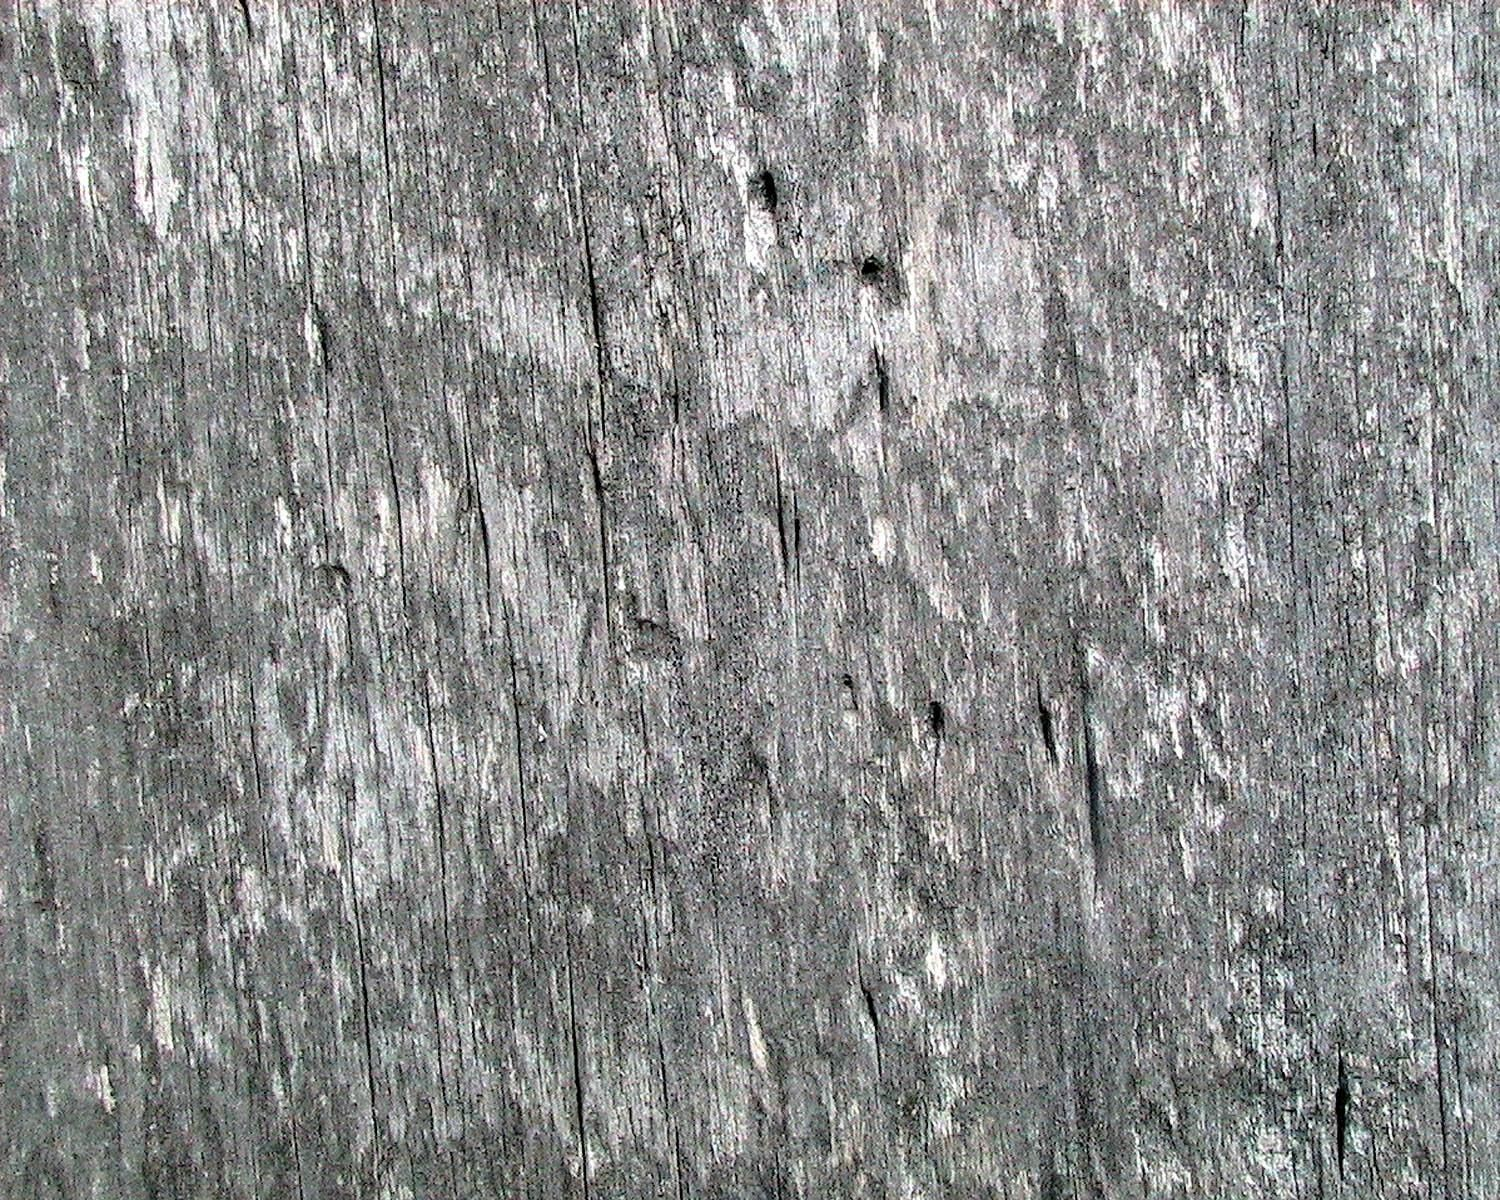 Description Weathered barn wood with worm holesjpg 1500x1200